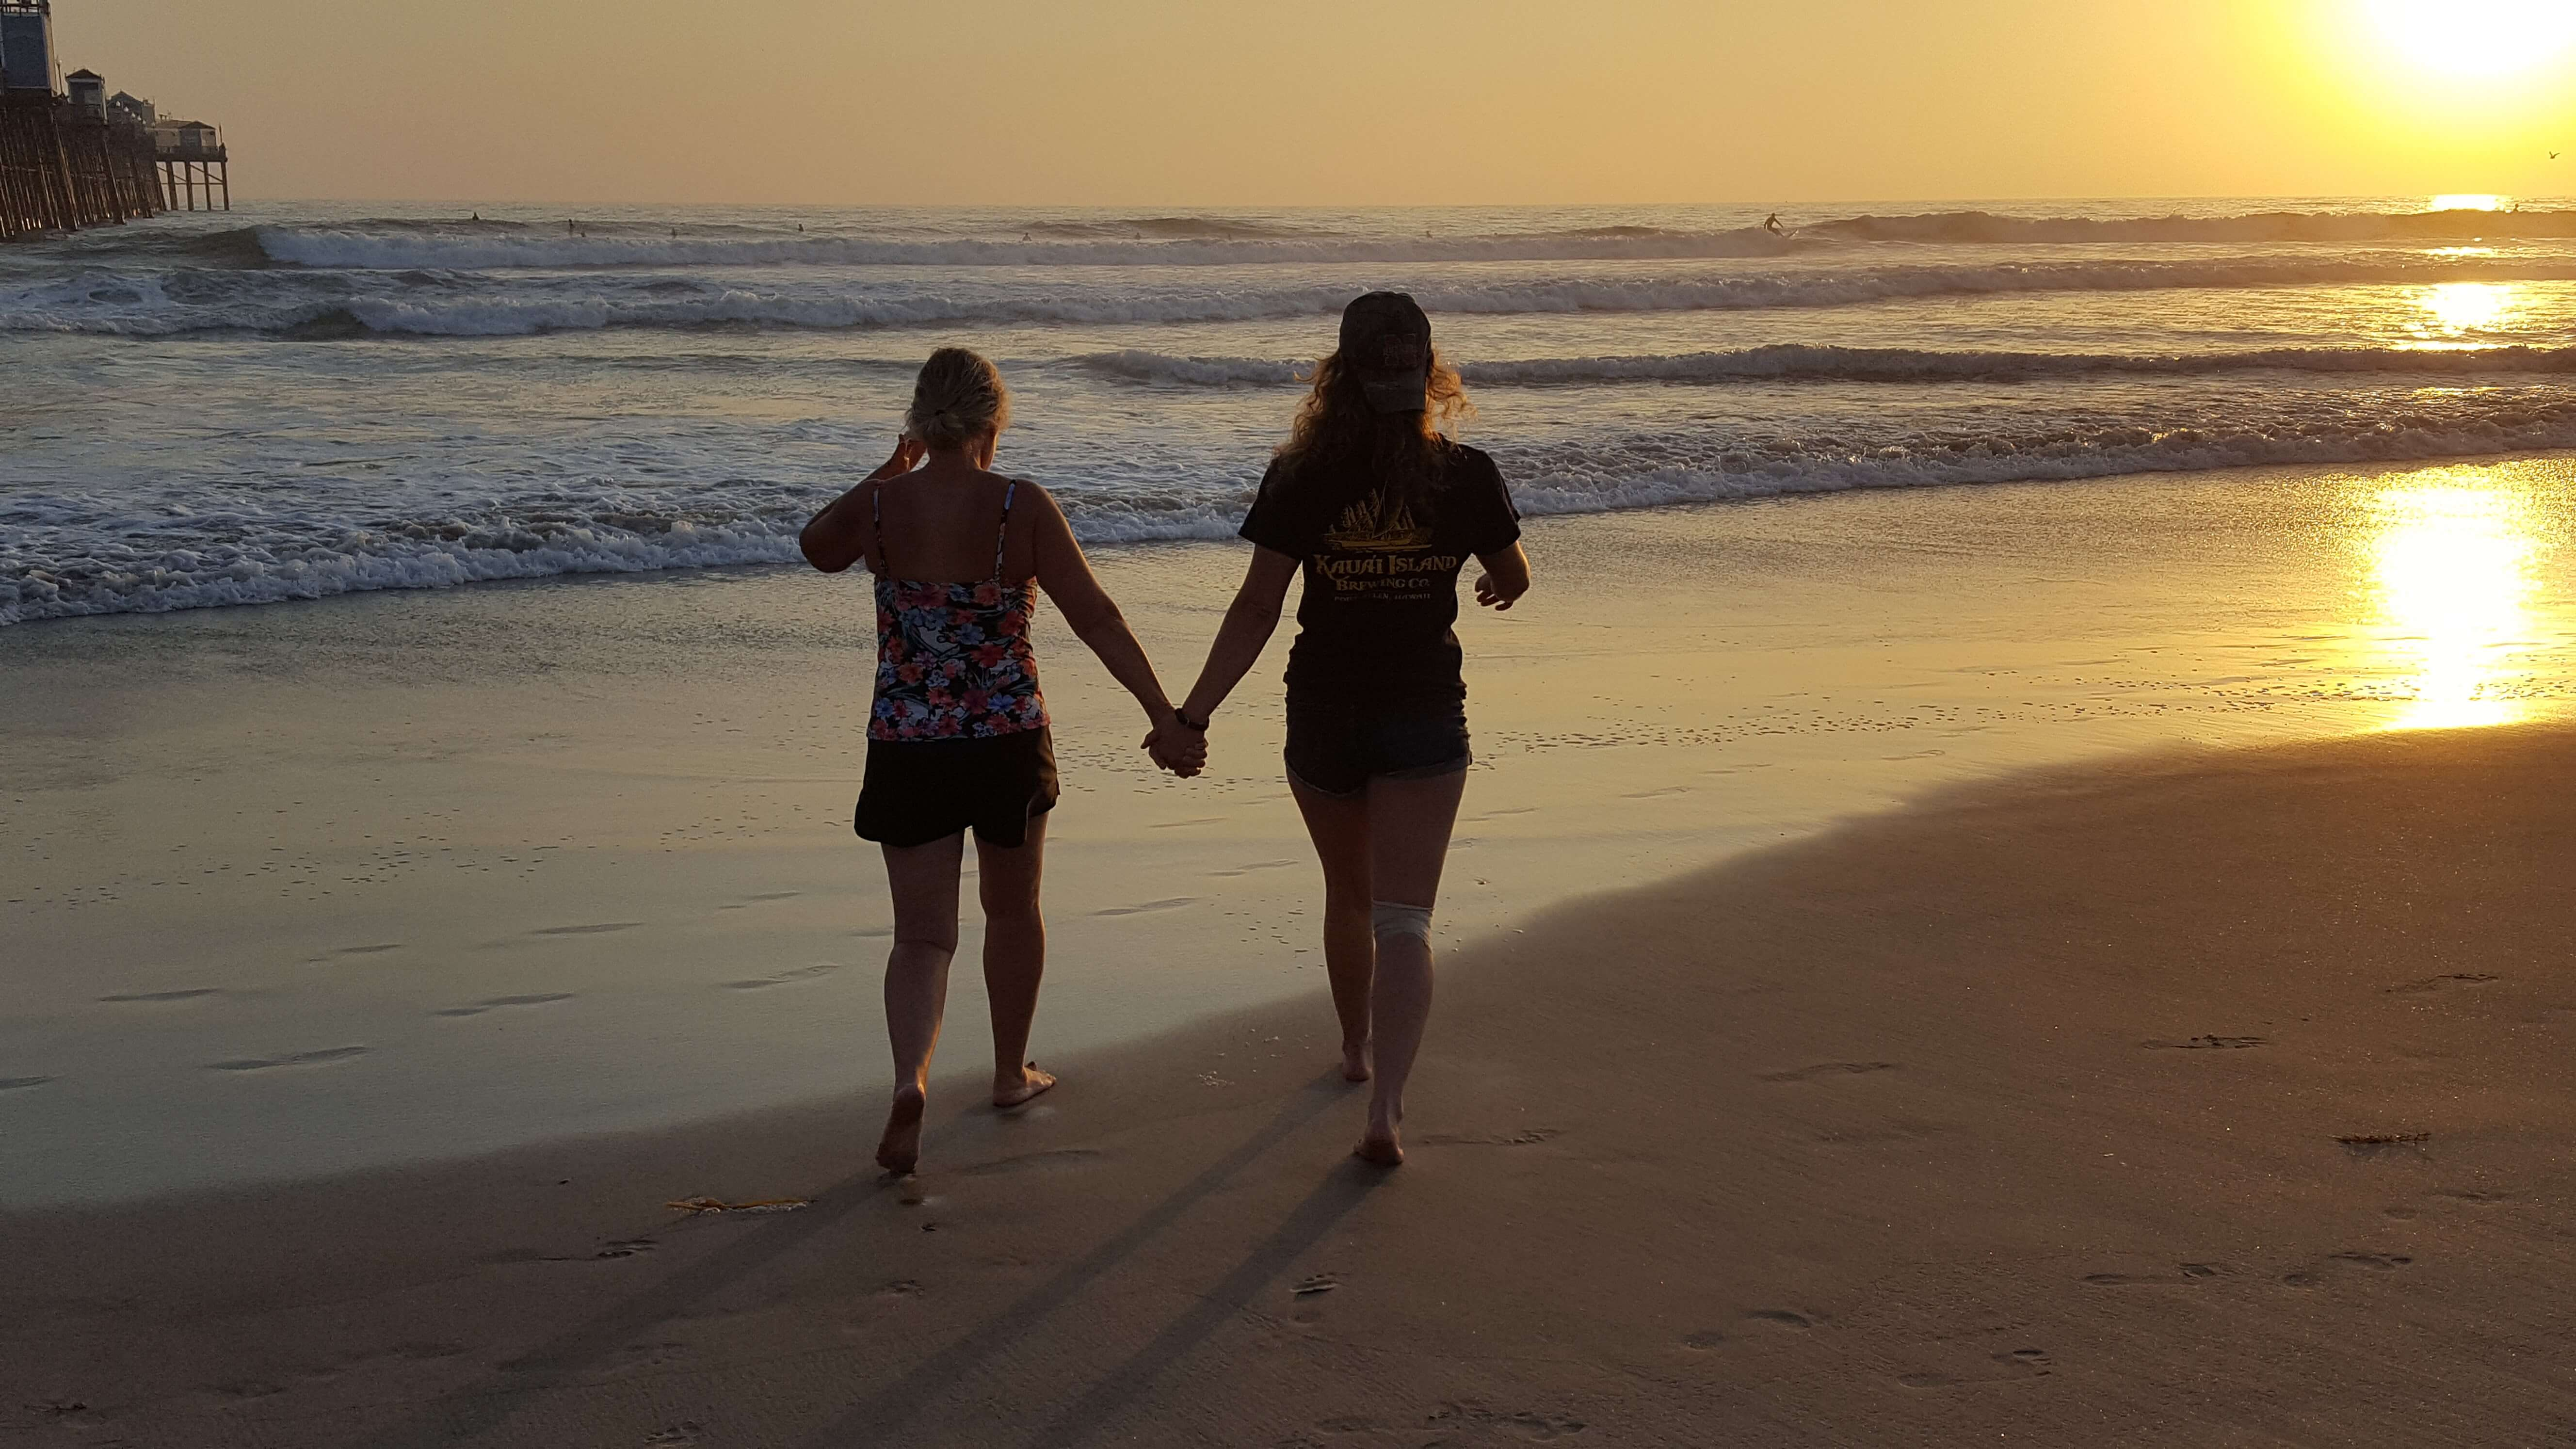 Mom and daughter walking on the beach at sunset